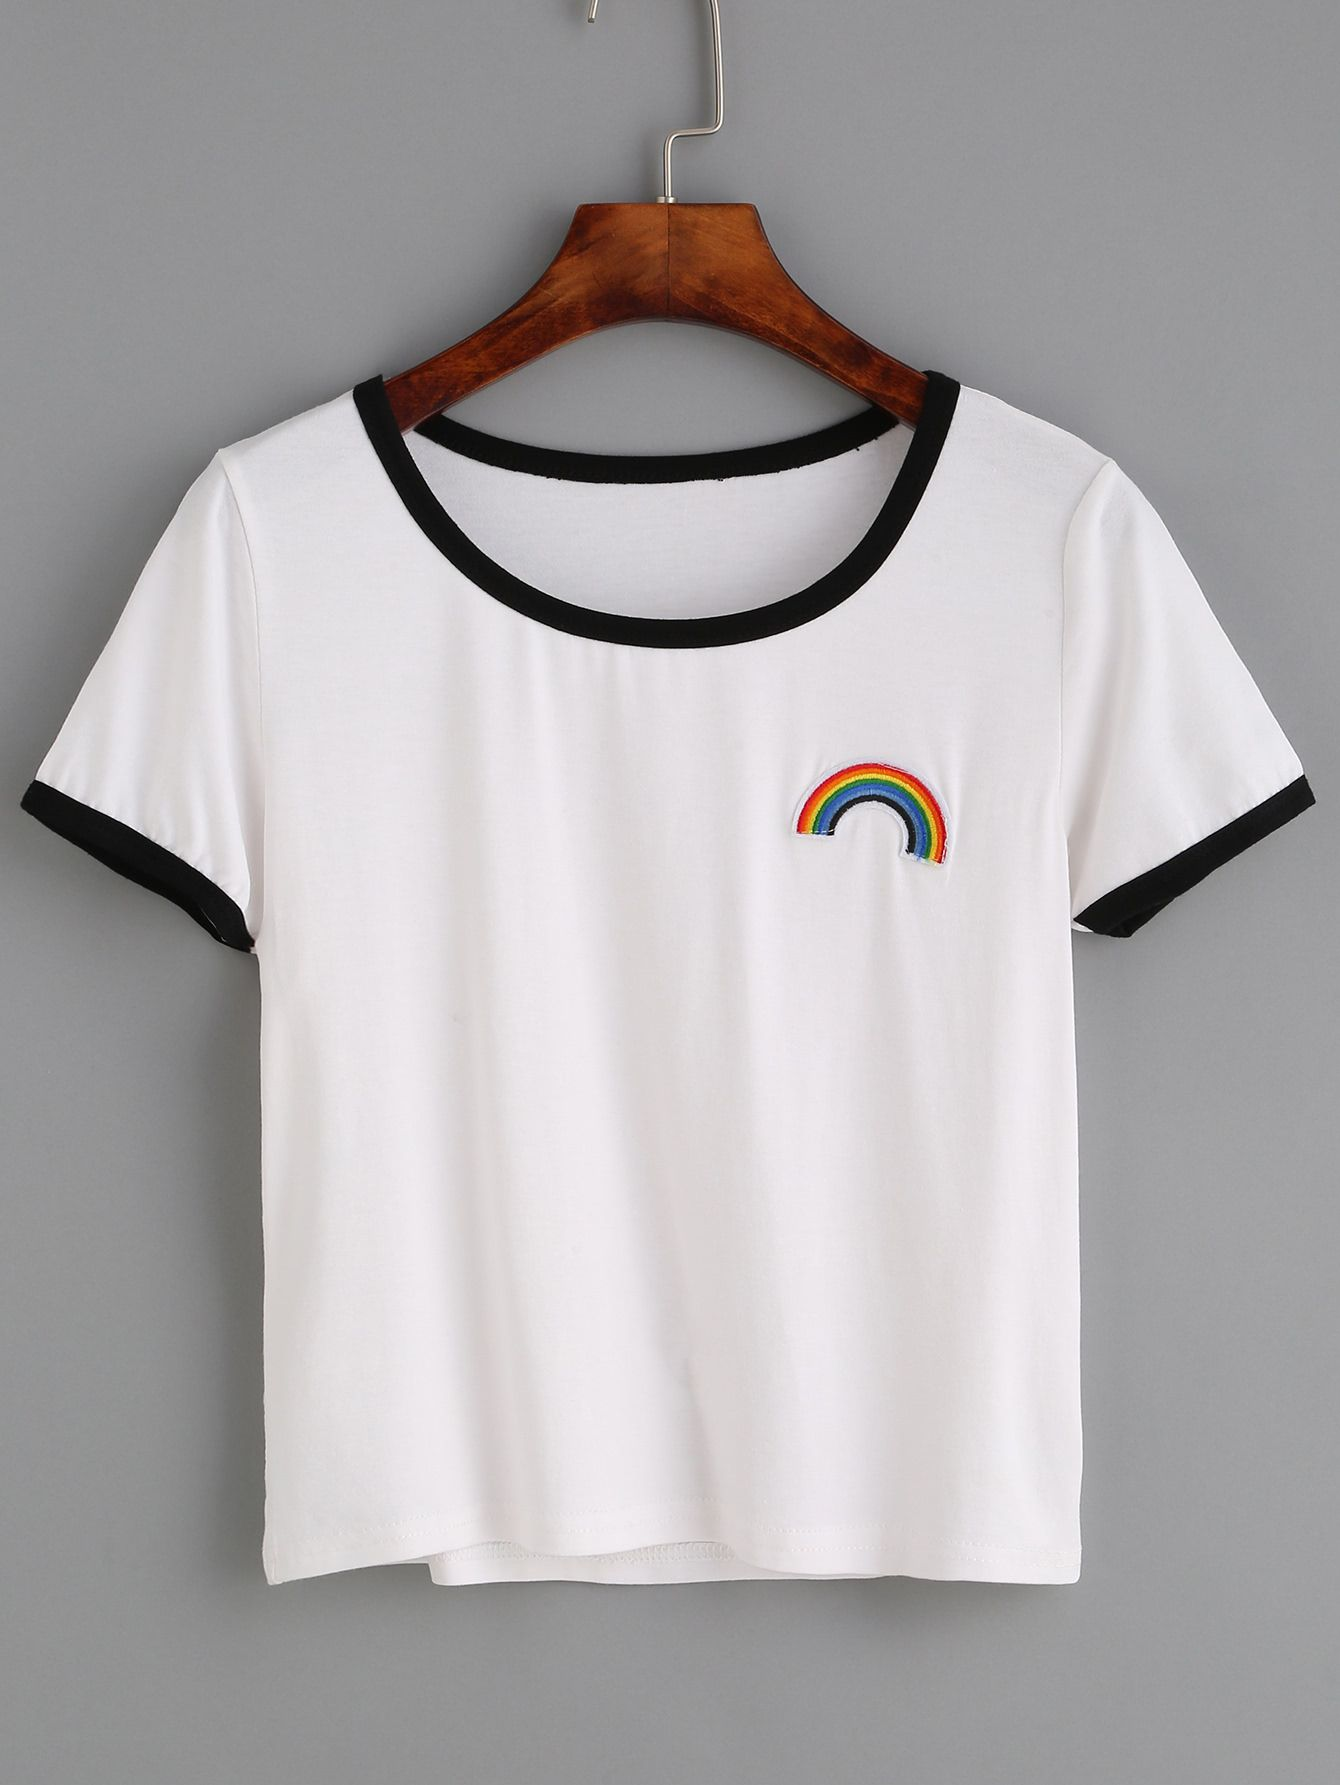 1b80e33819 Shop Contrast Trim Rainbow Embroidered T-shirt online. SheIn offers Contrast  Trim Rainbow Embroidered T-shirt & more to fit your fashionable needs.